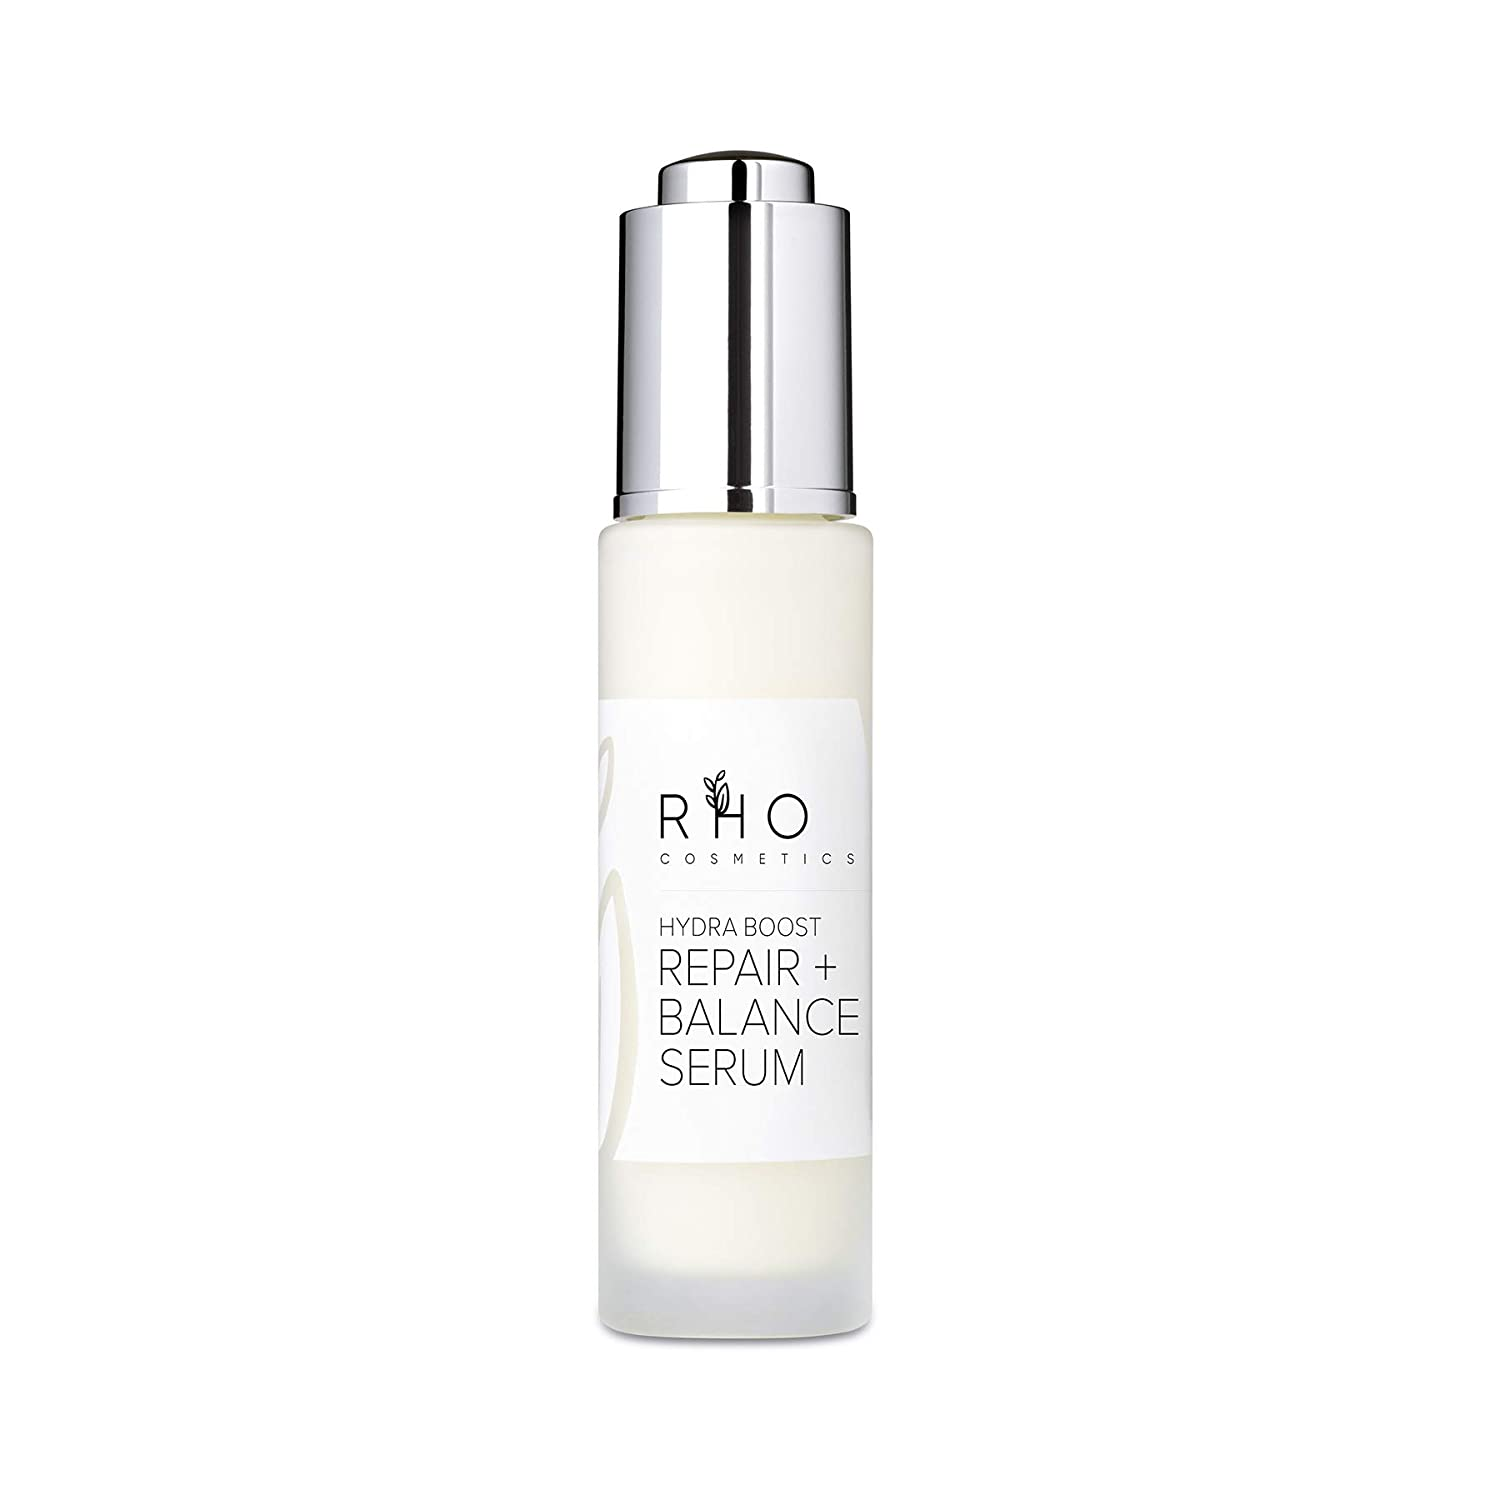 Rho Cosmetics Hydra Boost Repair + Balance Serum - Hydrating Anti-Aging Peptide Serum, 1.0 oz